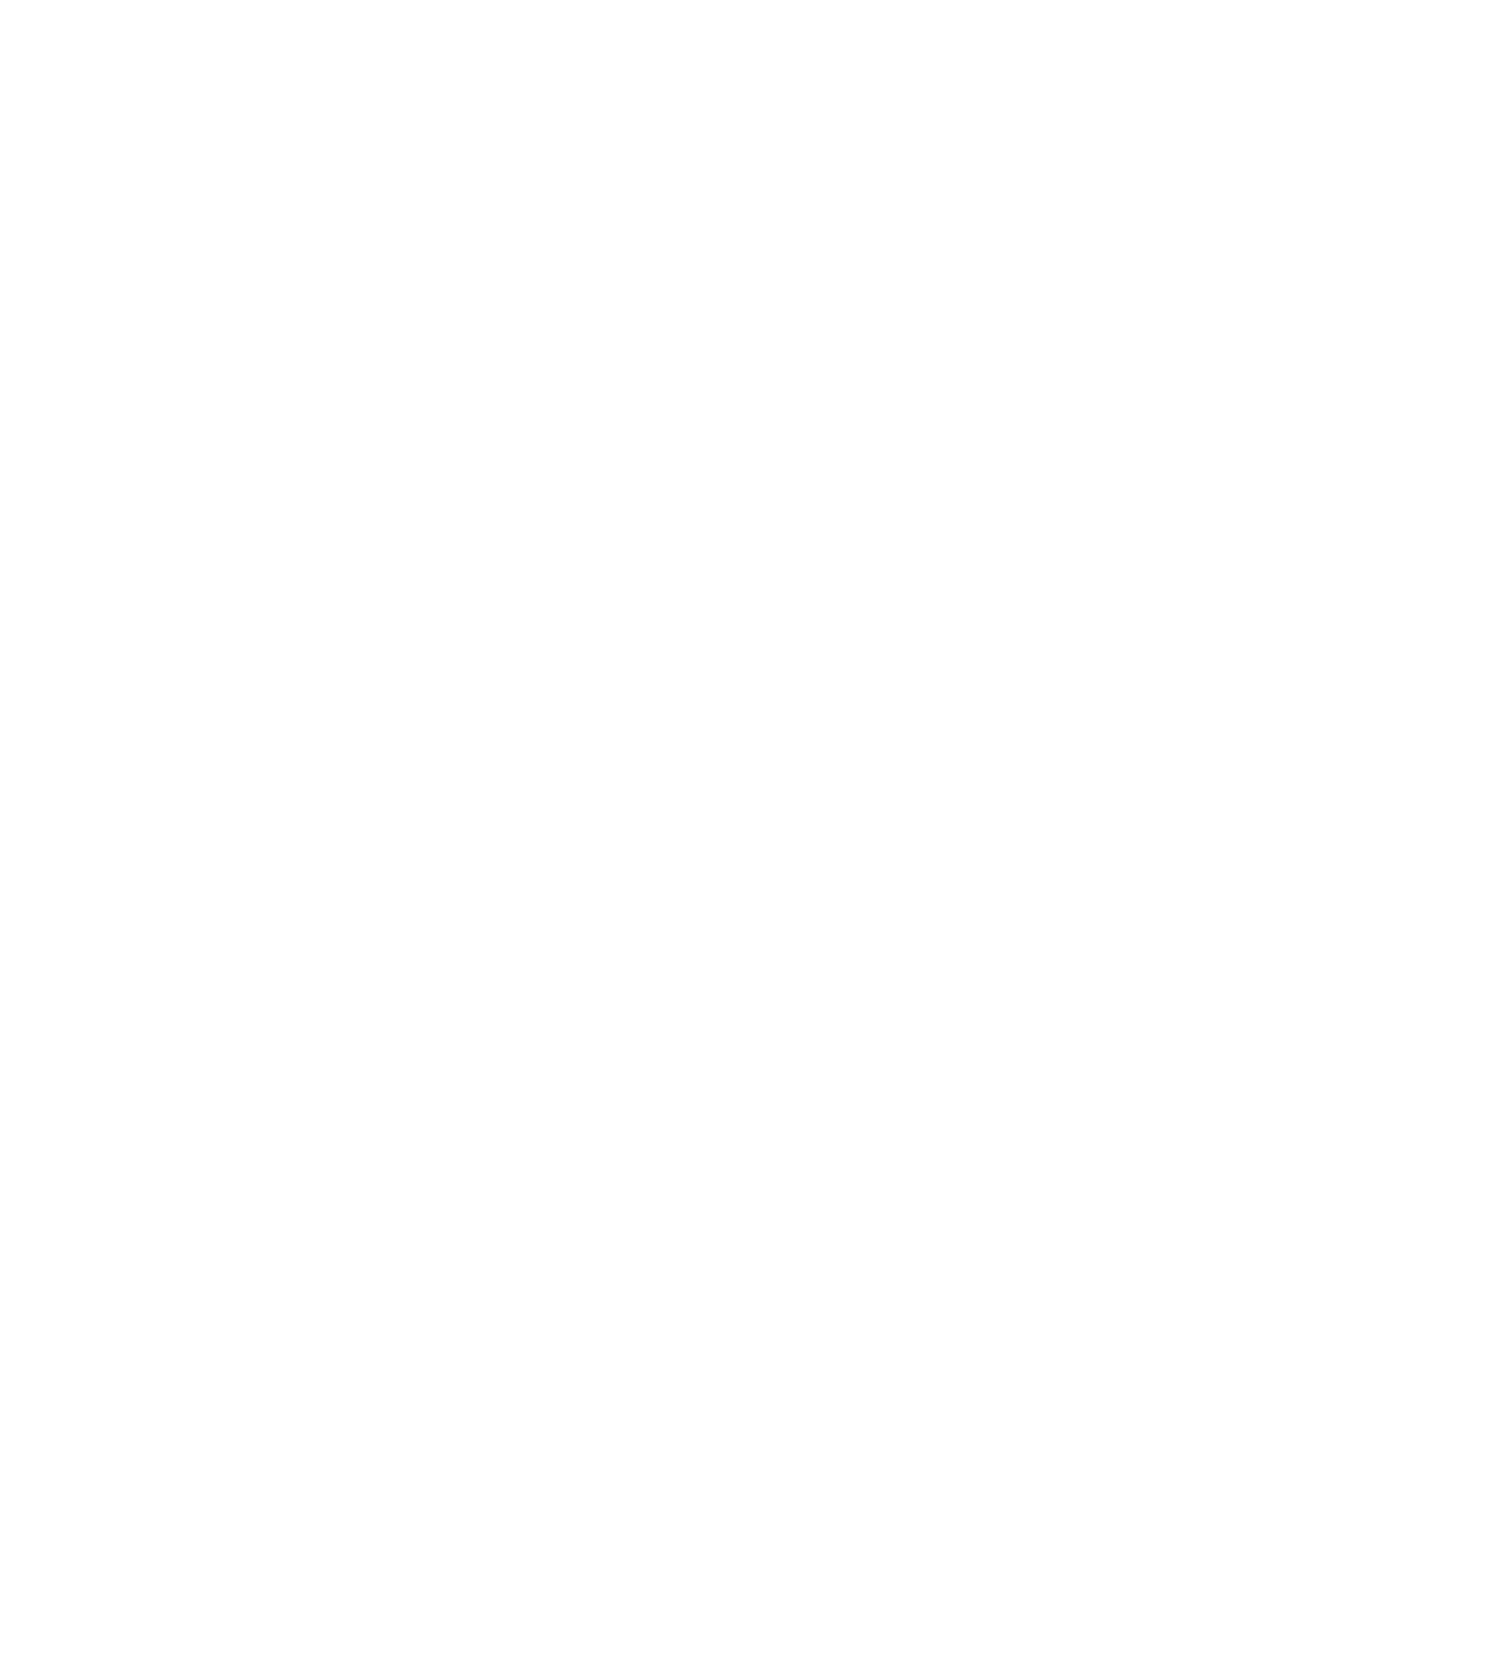 Southborough Society